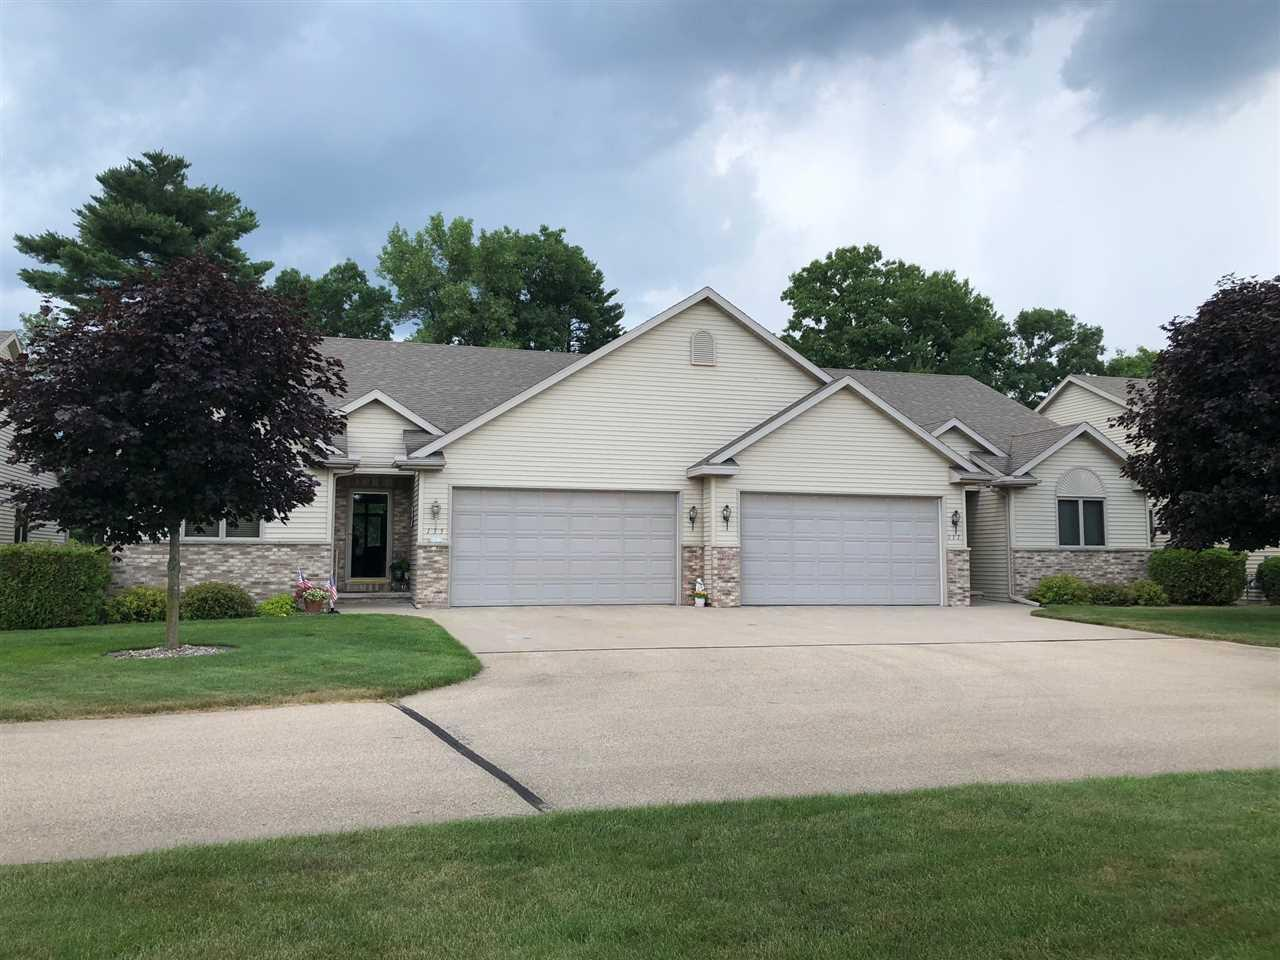 shawano singles This single-family home located at w8546 highway a, shawano wi, 54166 is currently for sale this property is listed by realtors association of northeast wisconsin for $249,900.